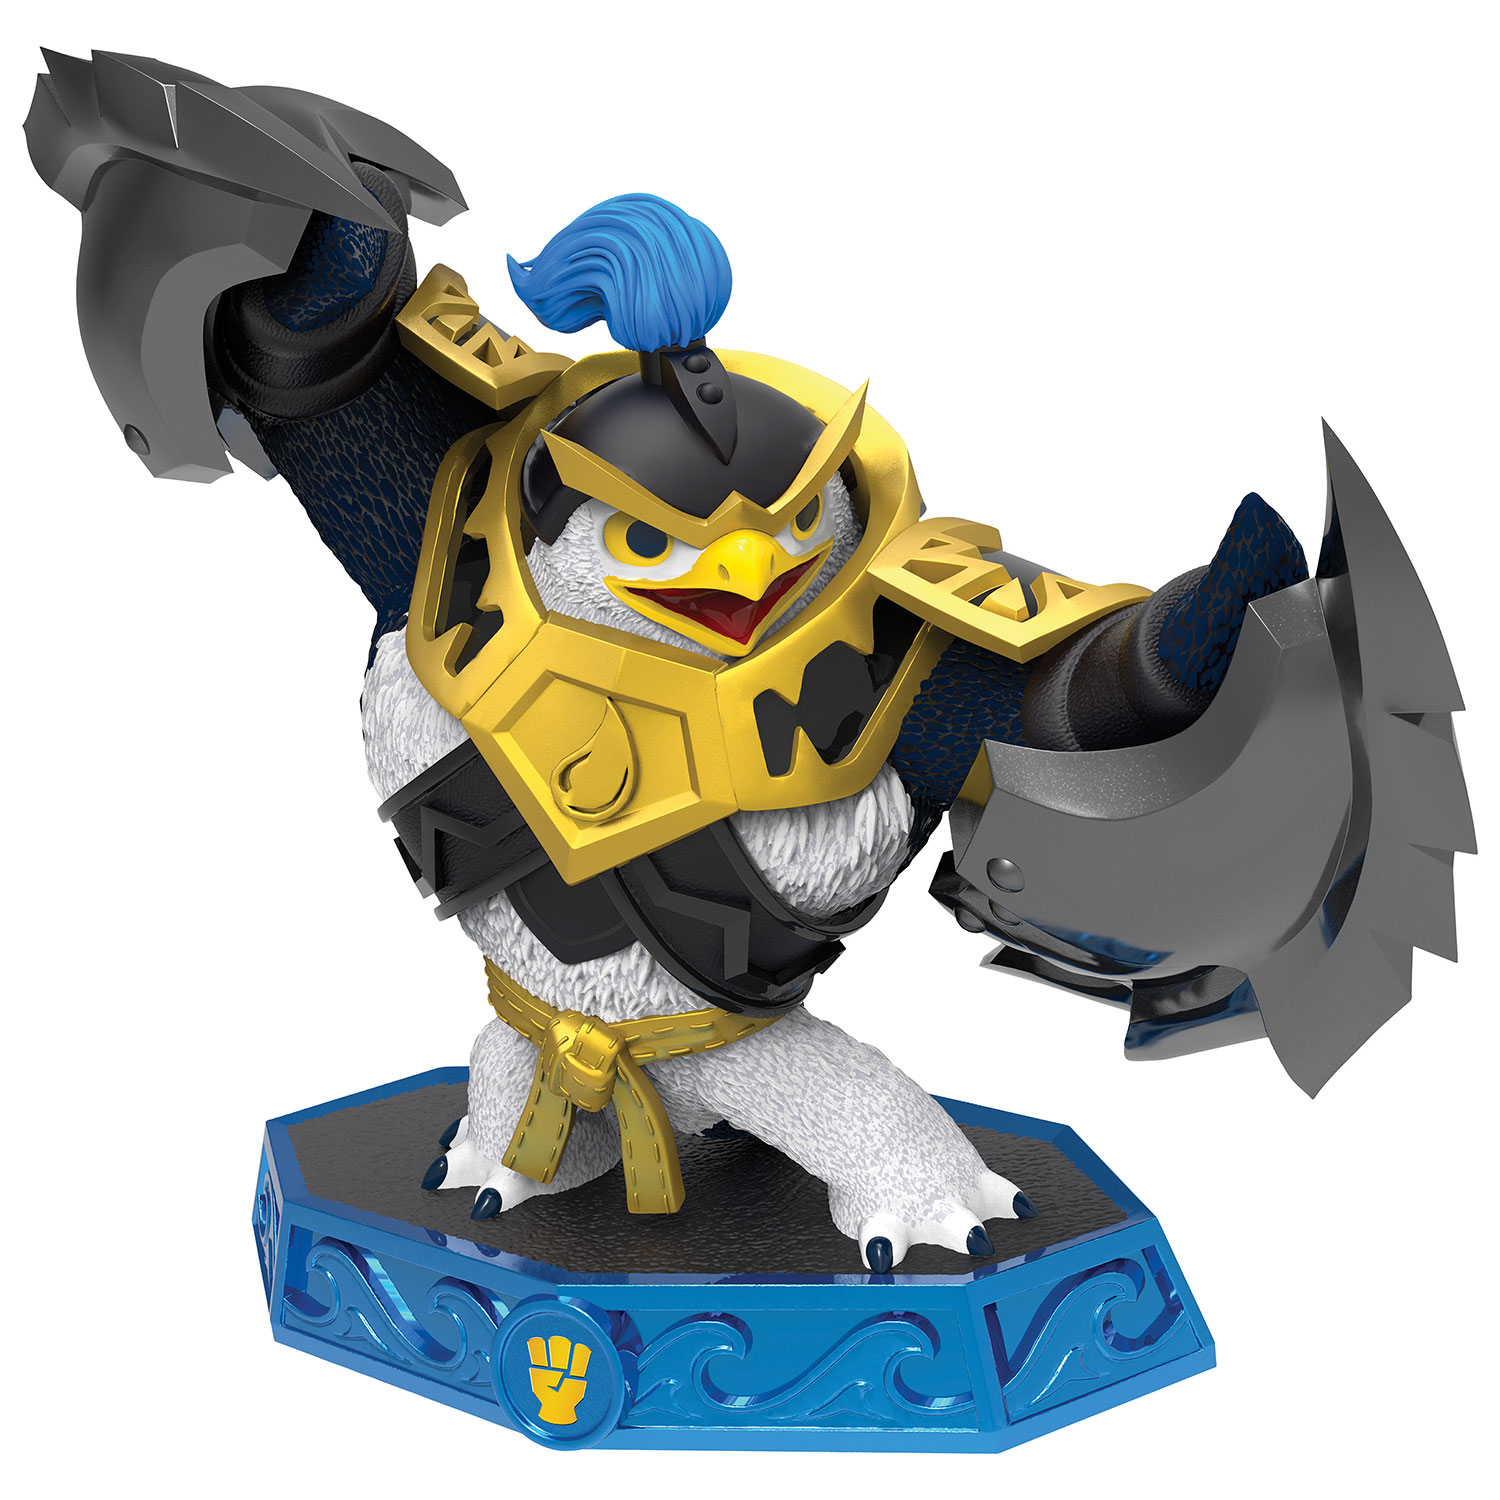 Skylanders Imaginators Master King Pen